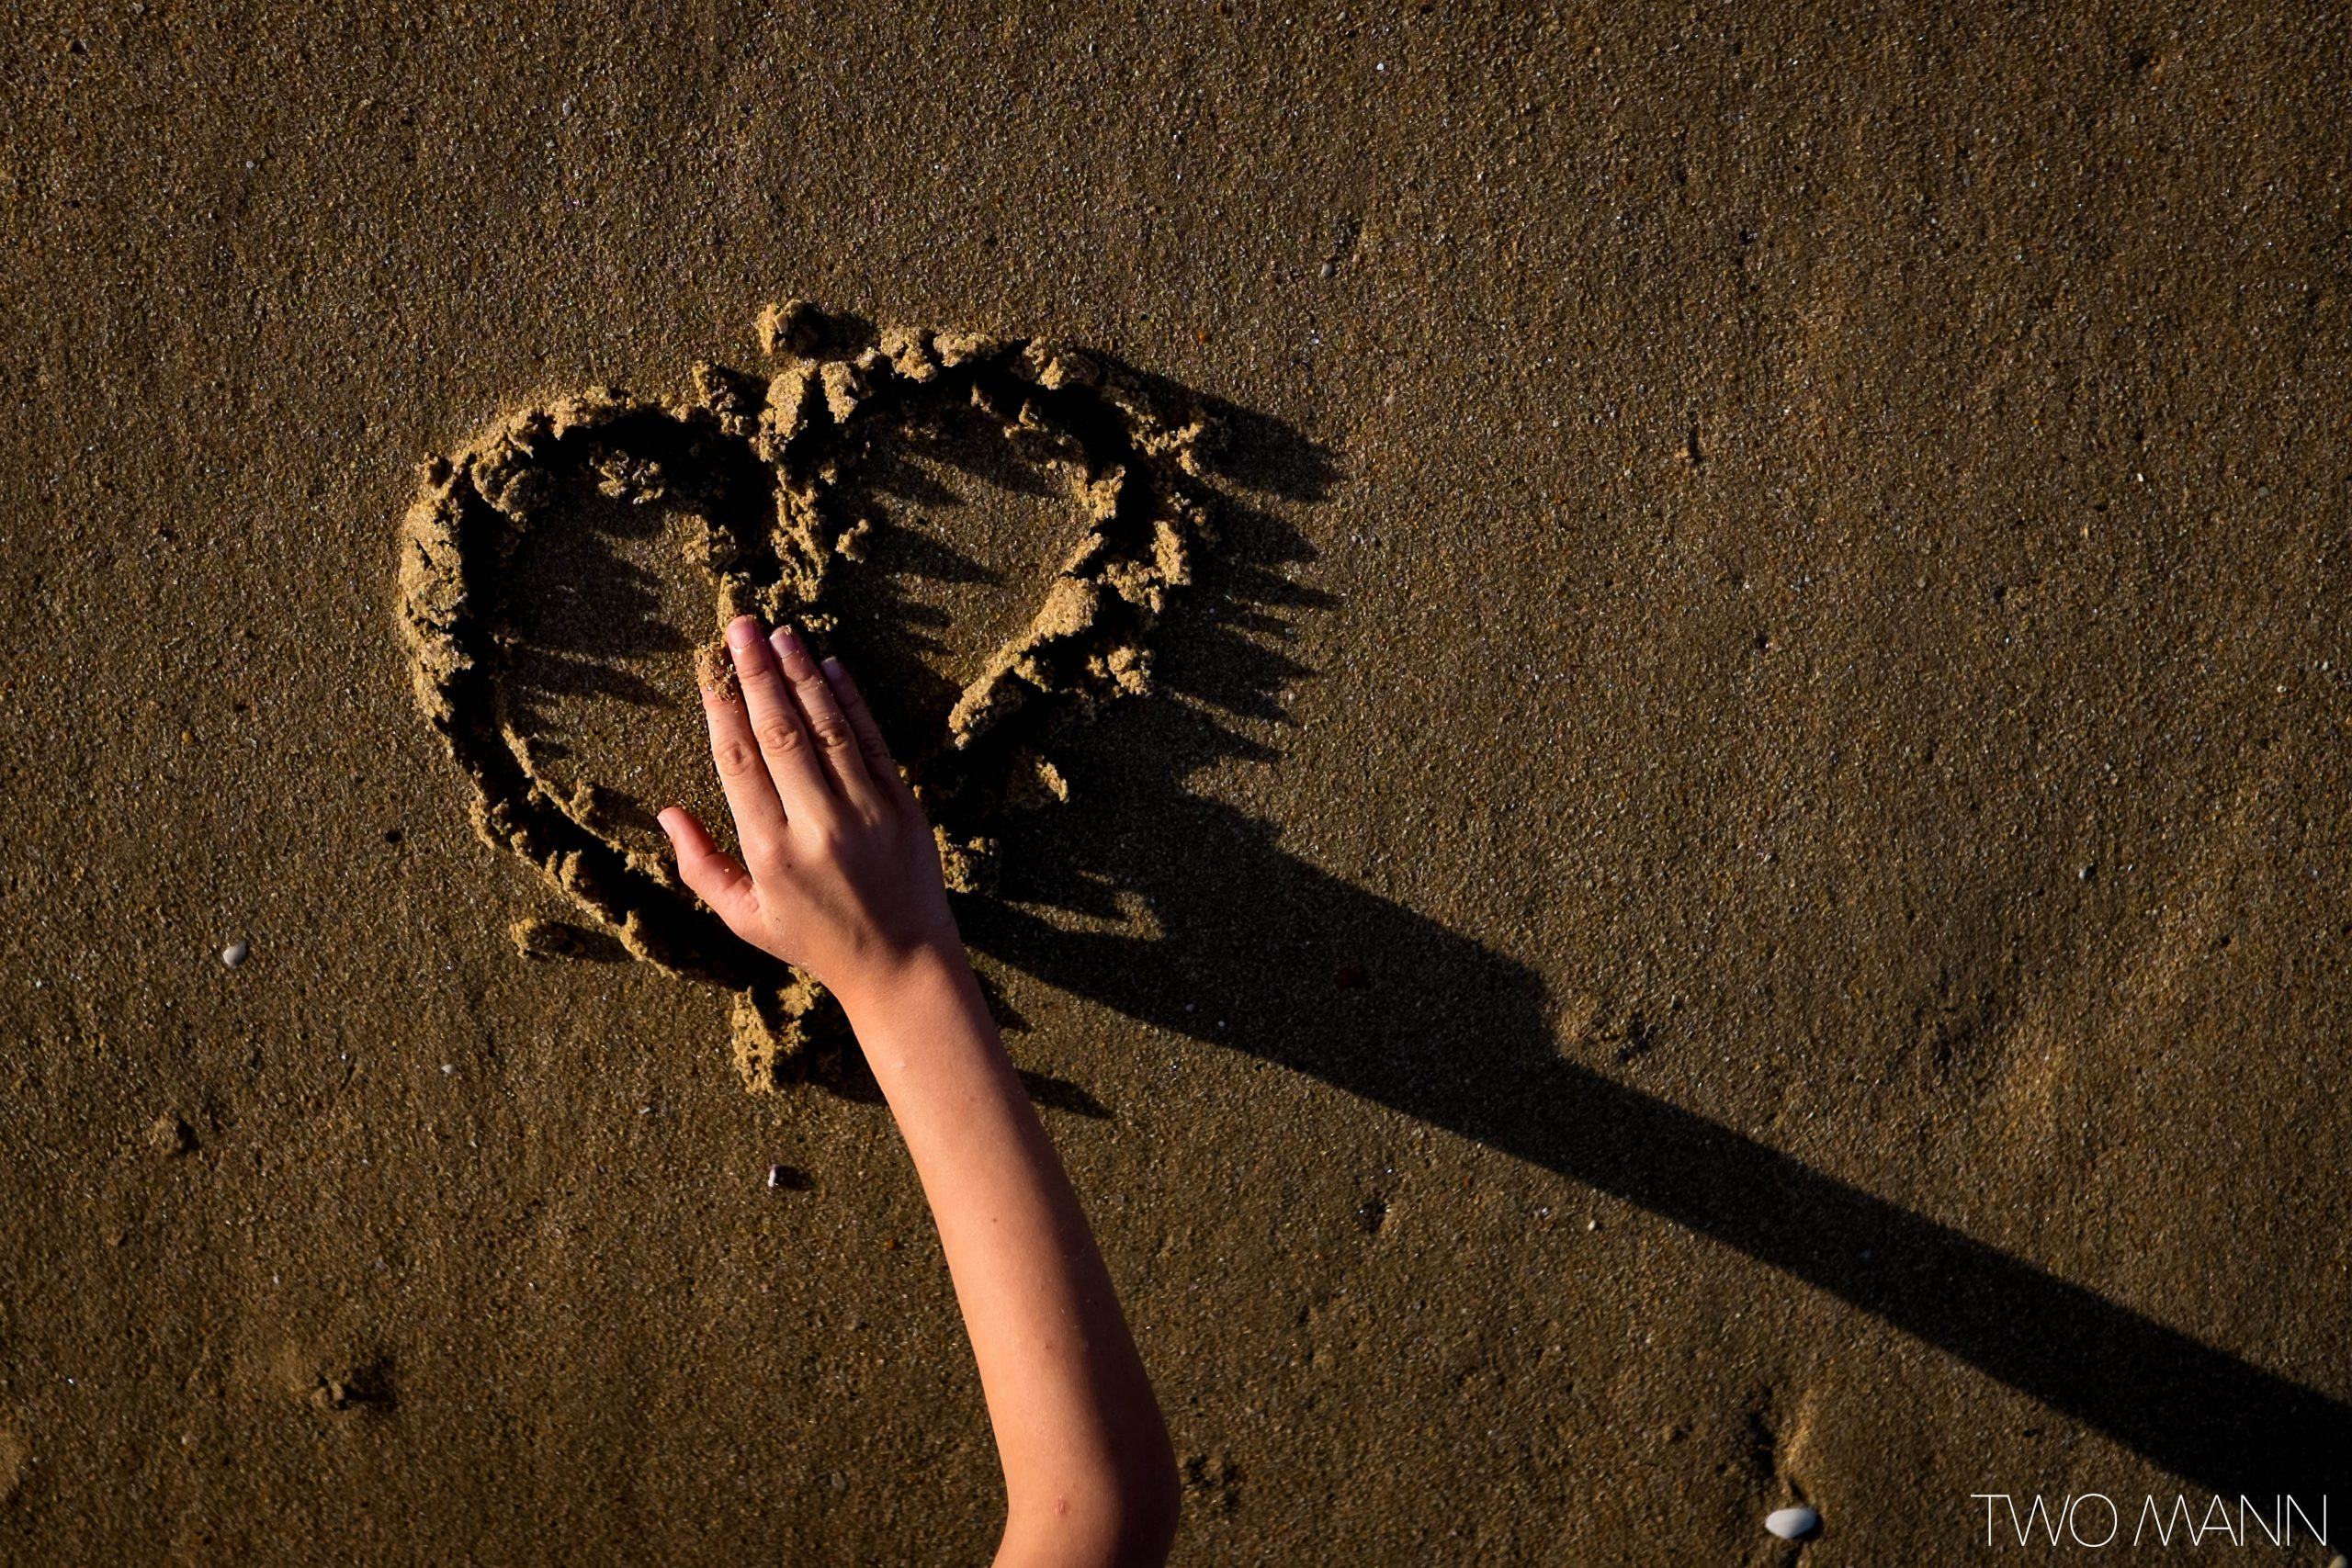 Young child draws a heart in the sand during sunset